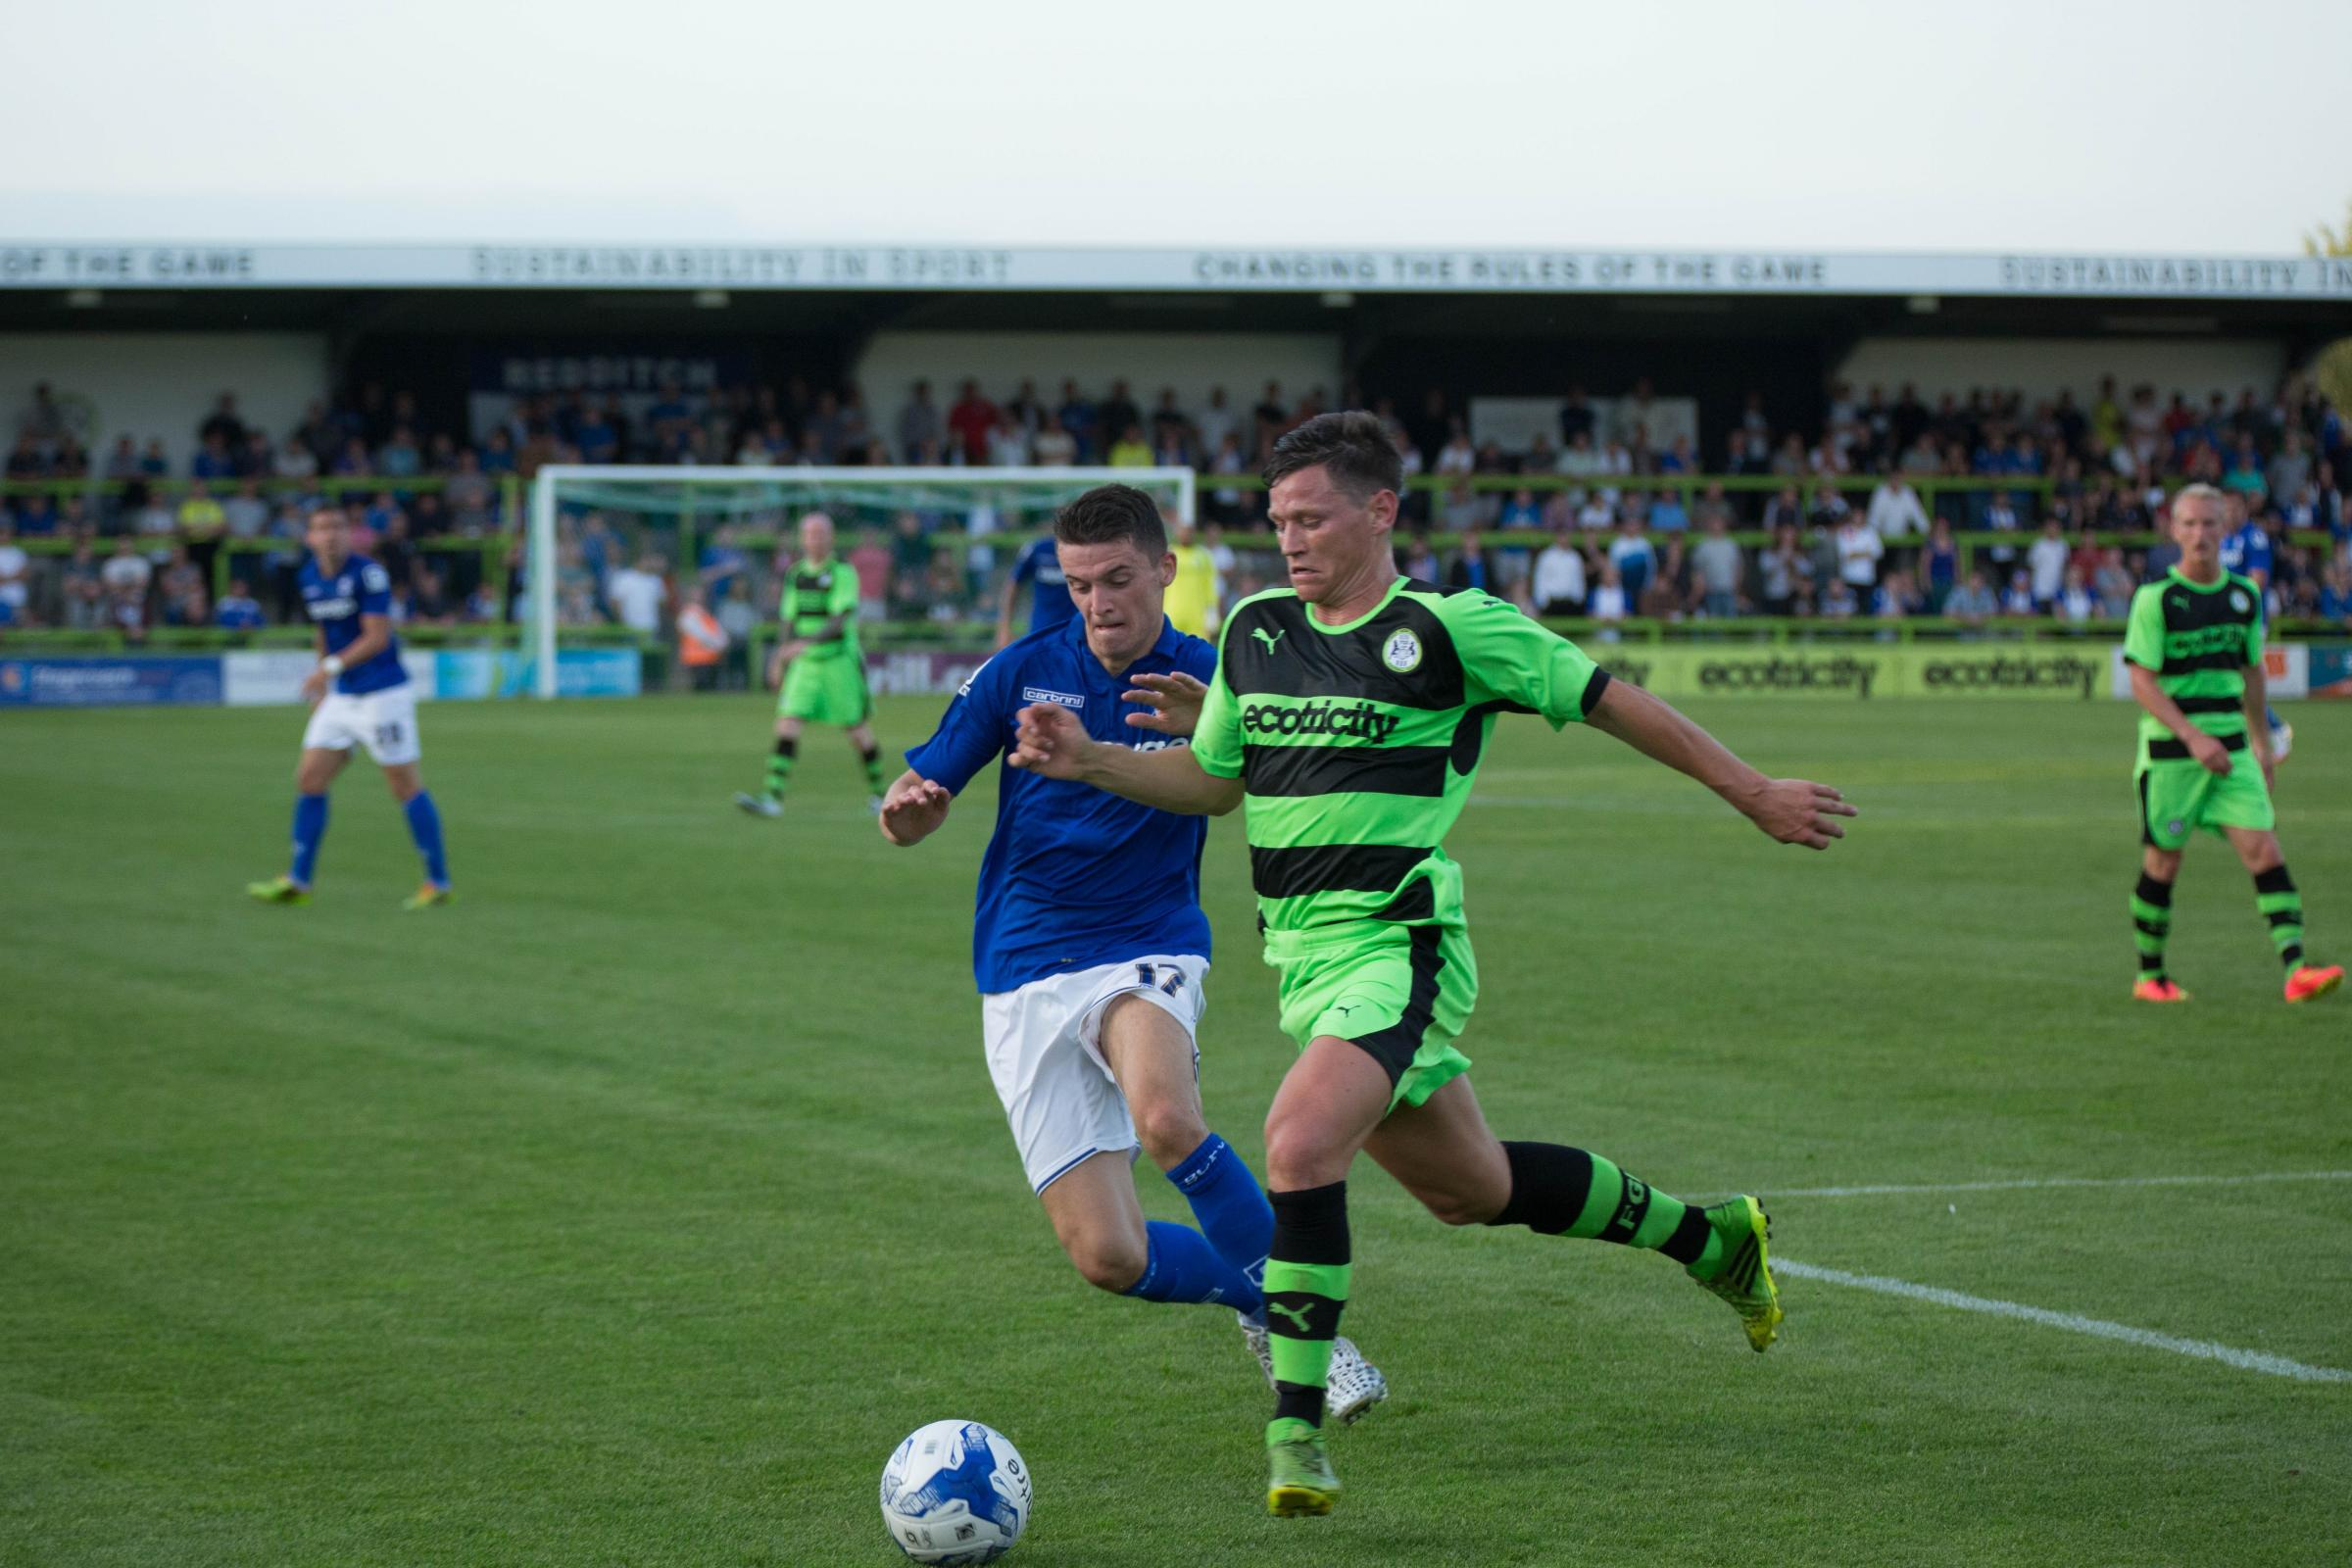 Football: Promising signs for Forest Green in excellent test against Birmingham